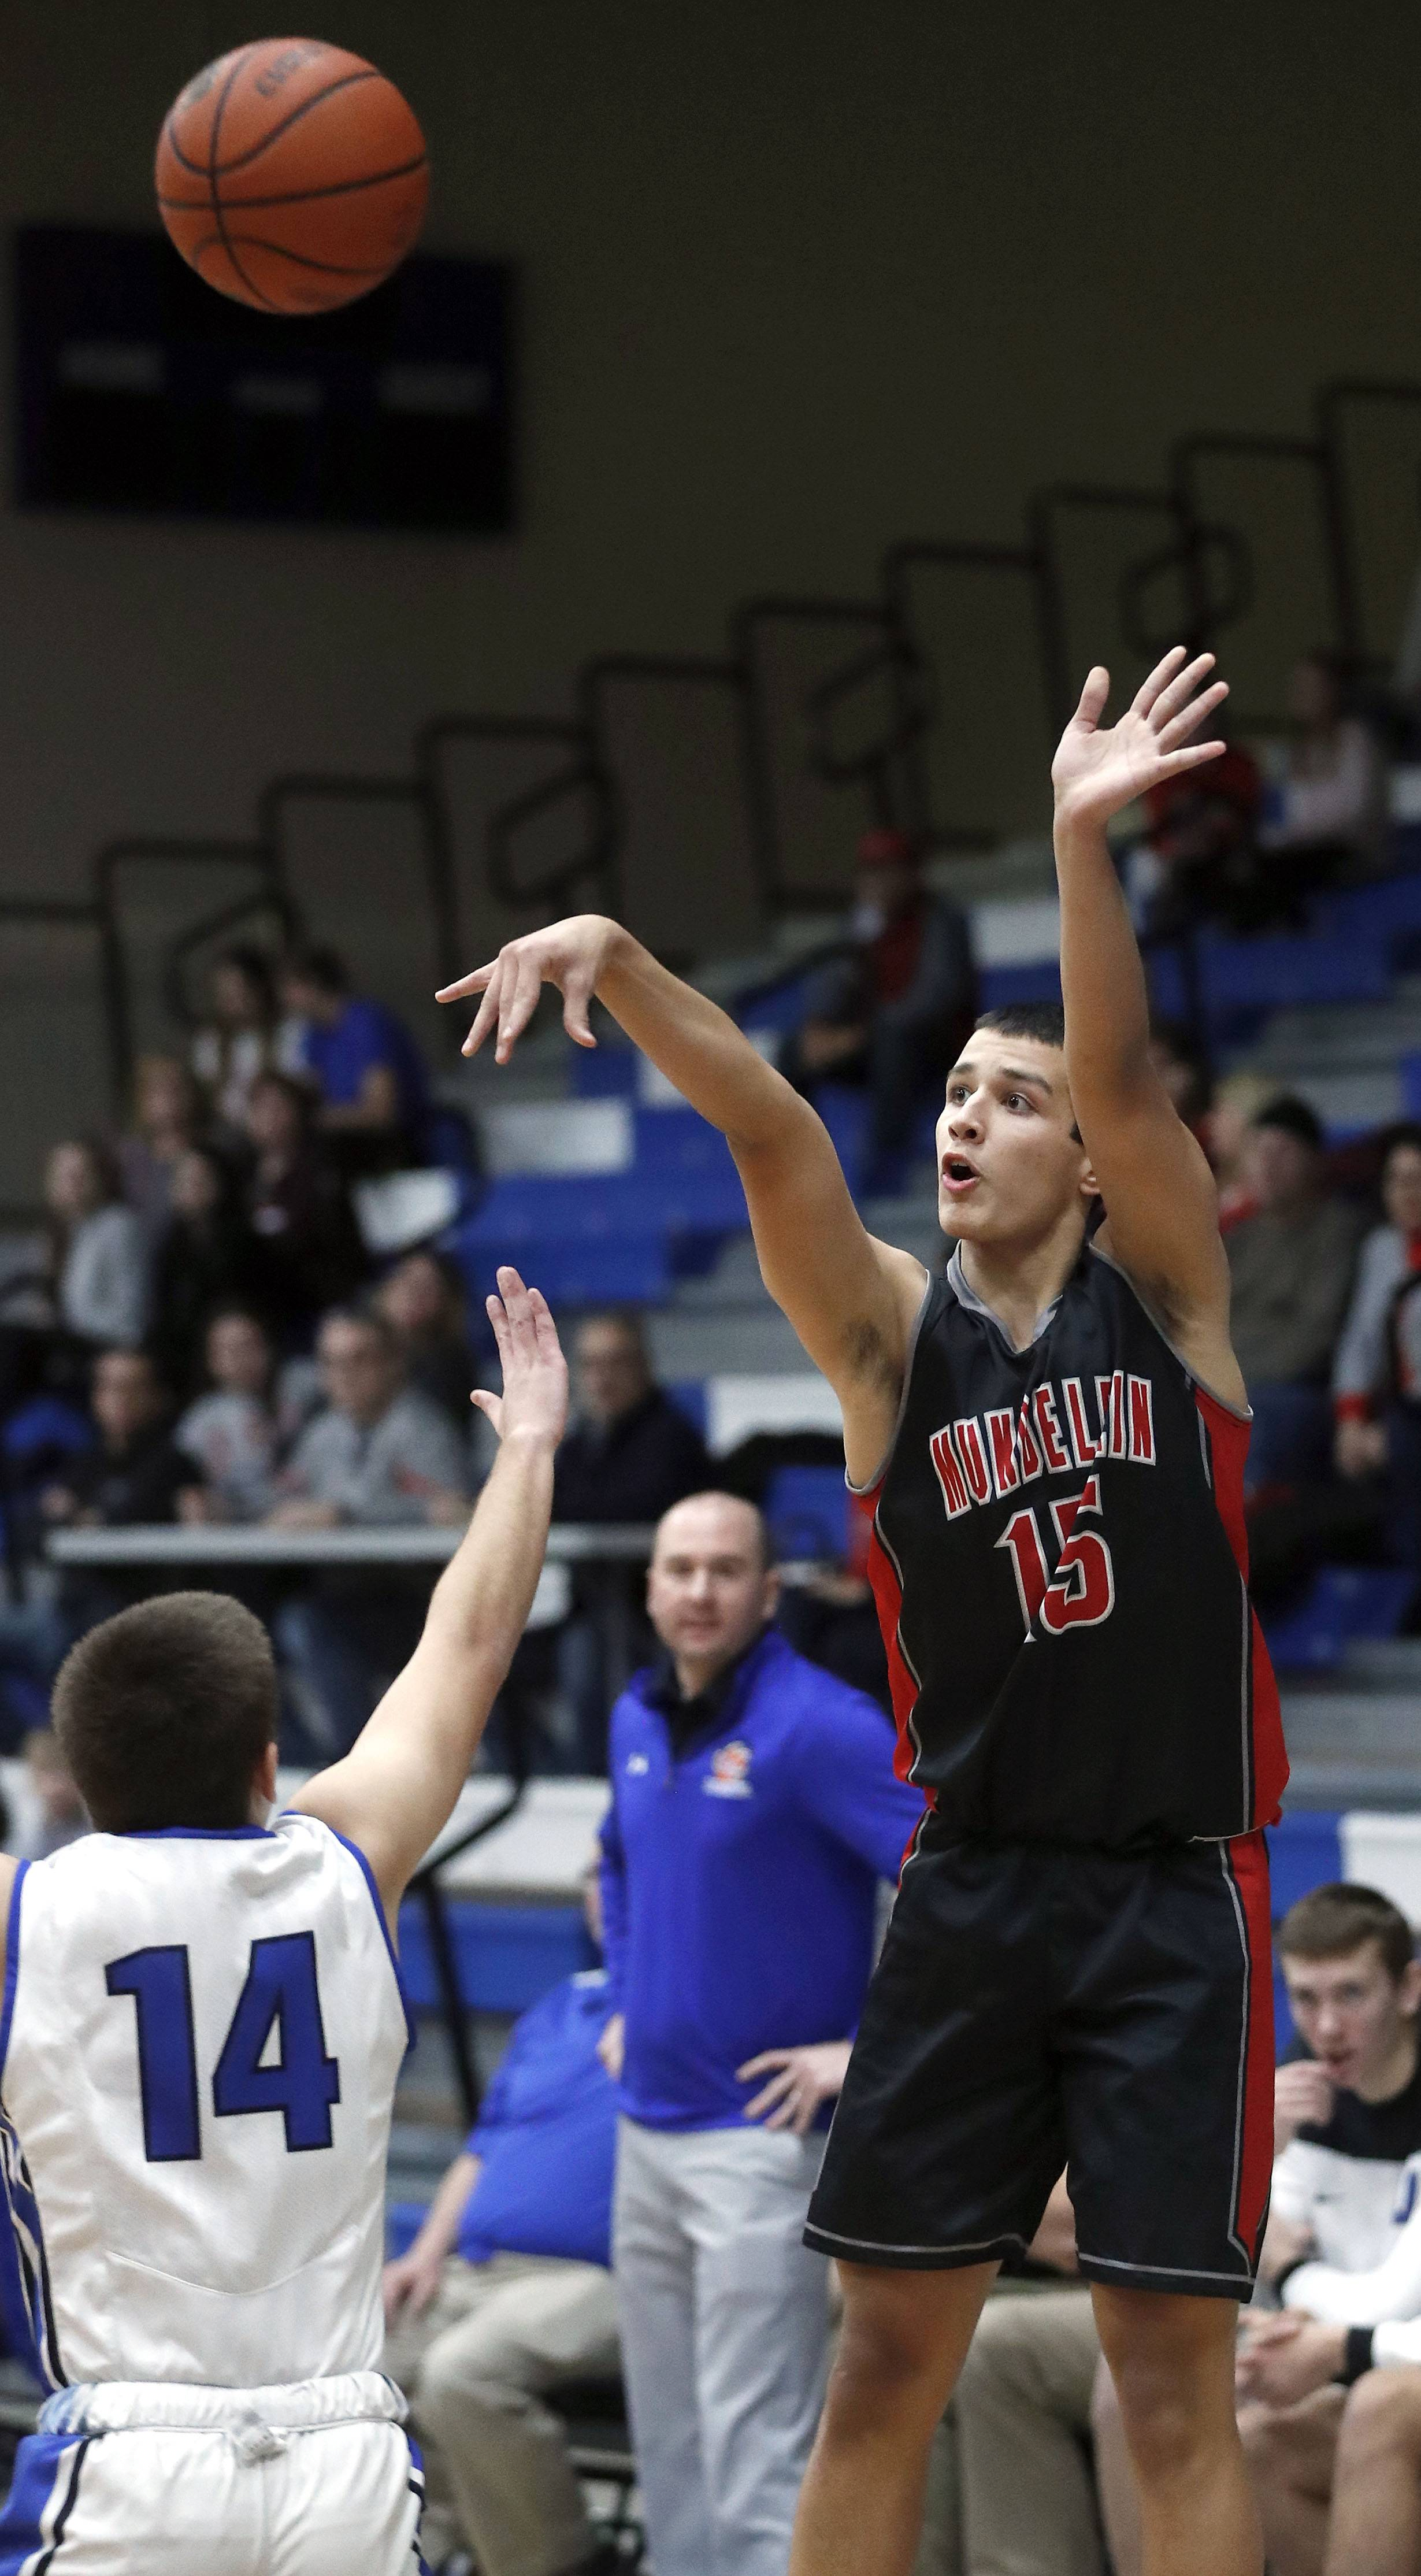 Mundelein's Andrew Gonzalez, right, shoots over Lake Zurich's Austin LePage during their game Tuesday night in Lake Zurich,